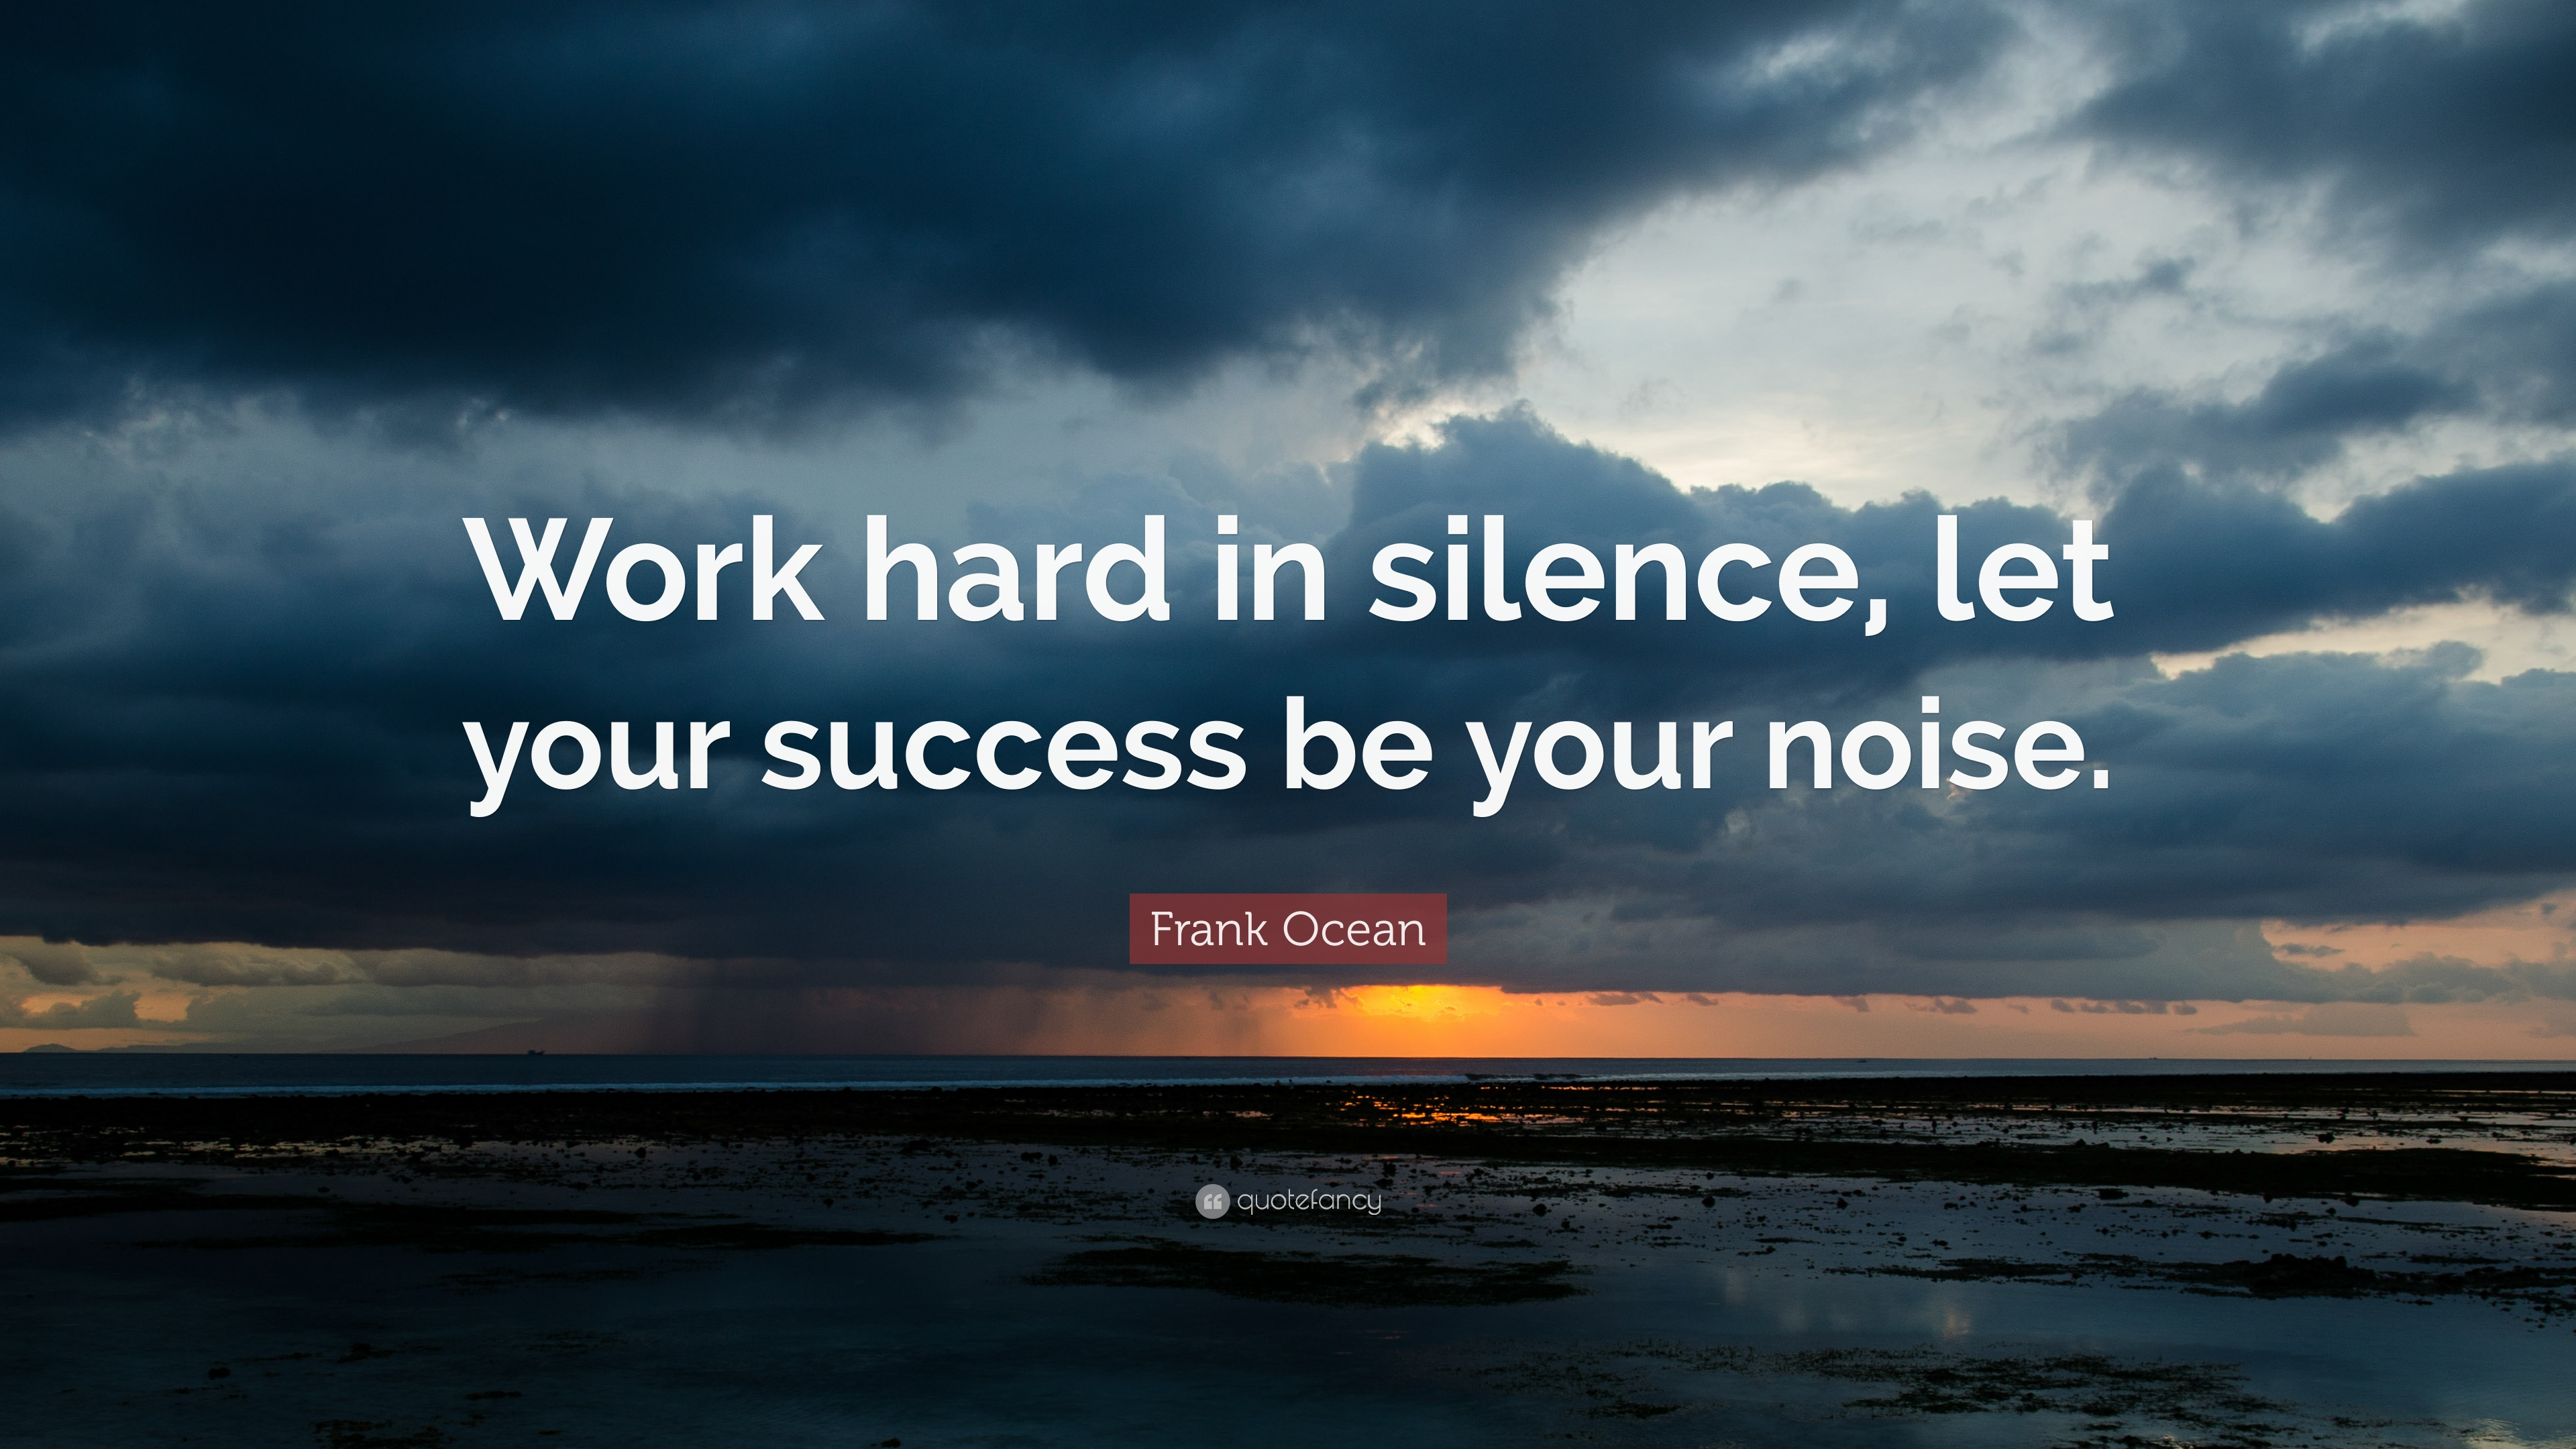 [Image] – Work hard in silence